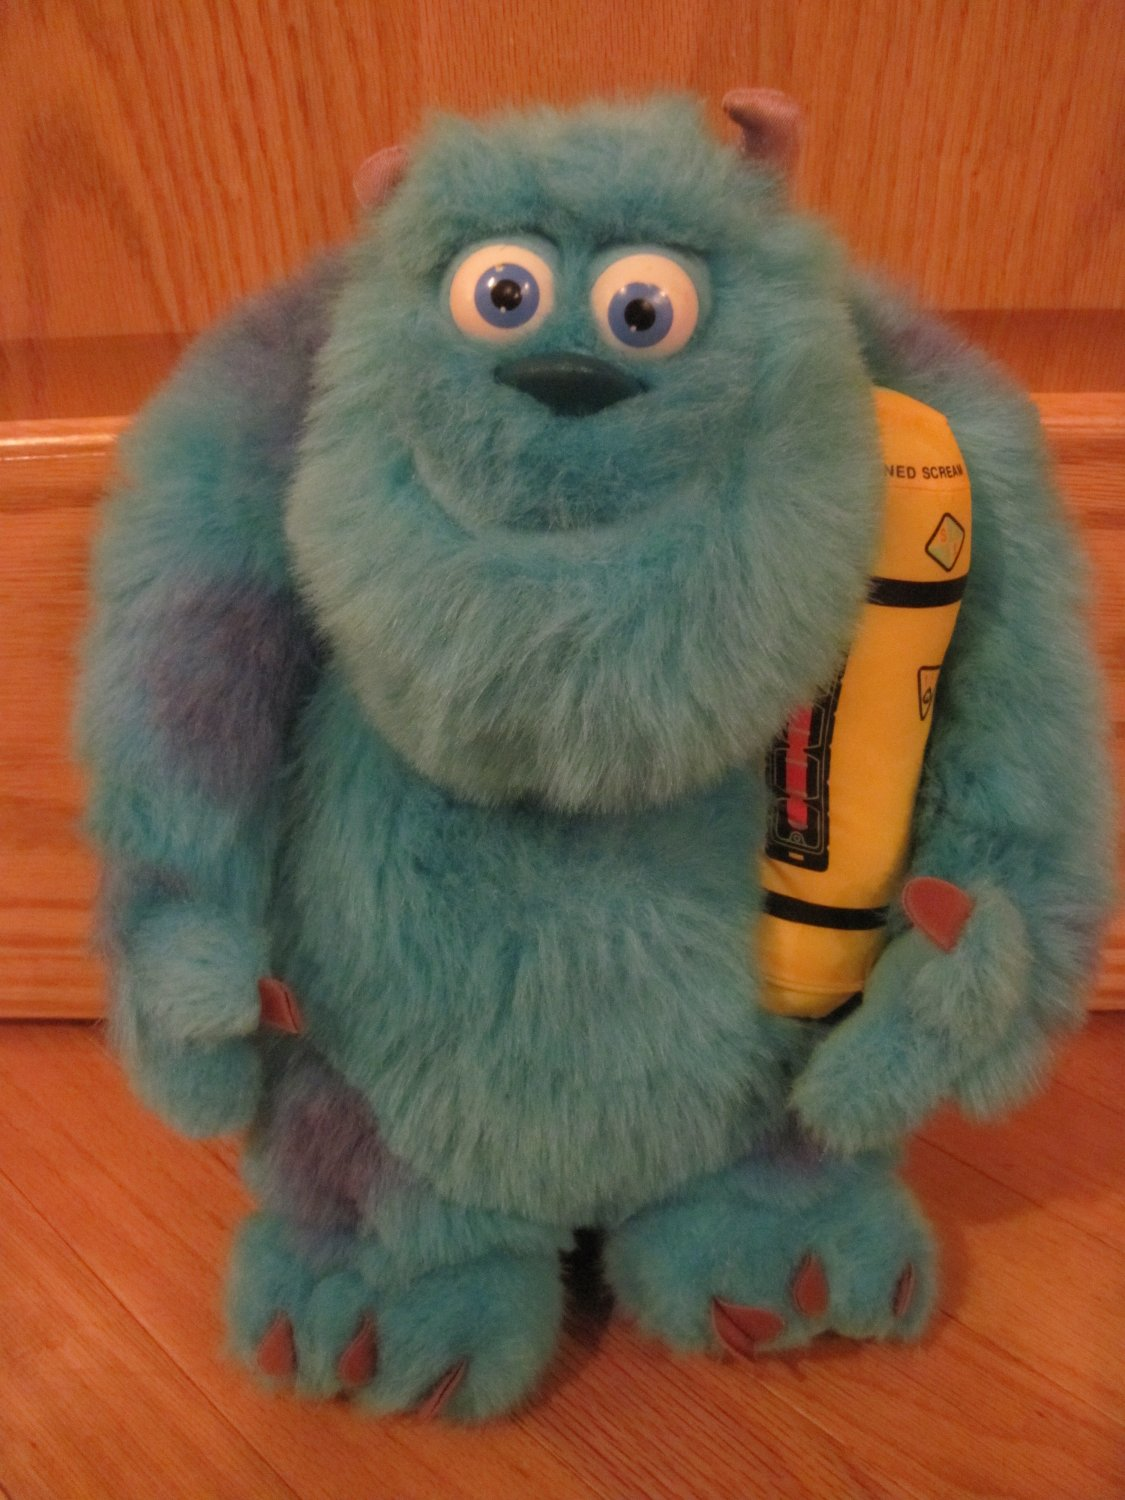 Glow Toys For Bedtime Monsters Inc Plush Glowing Talking Bedtime Sulley Doll Sully